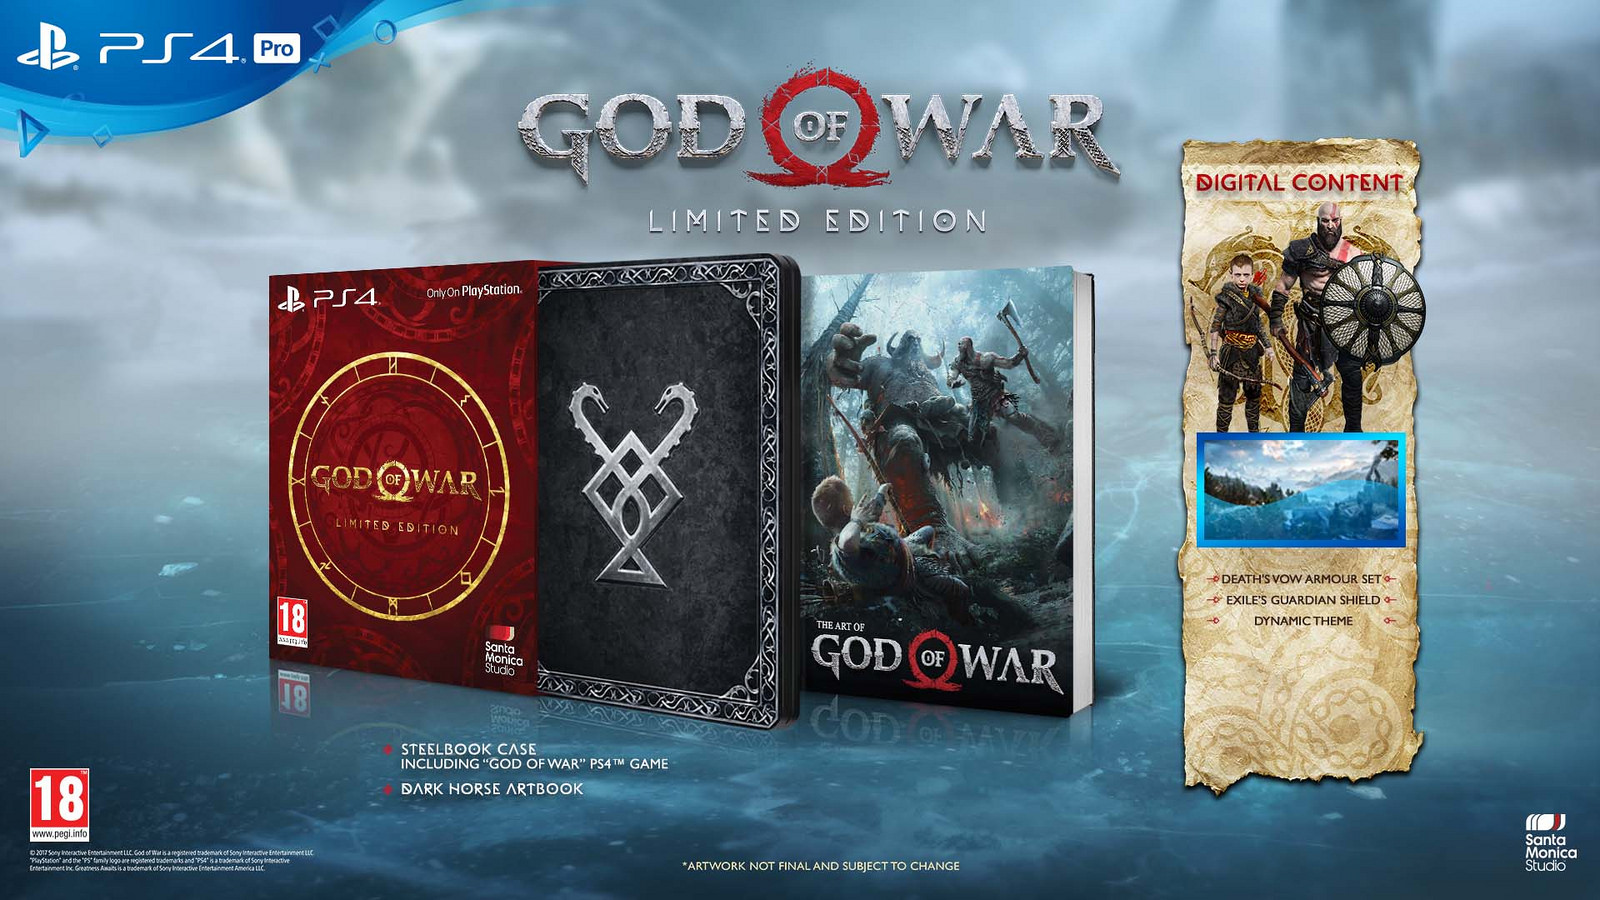 God of War PS4 Story Trailer Released, Release Date Confirmed